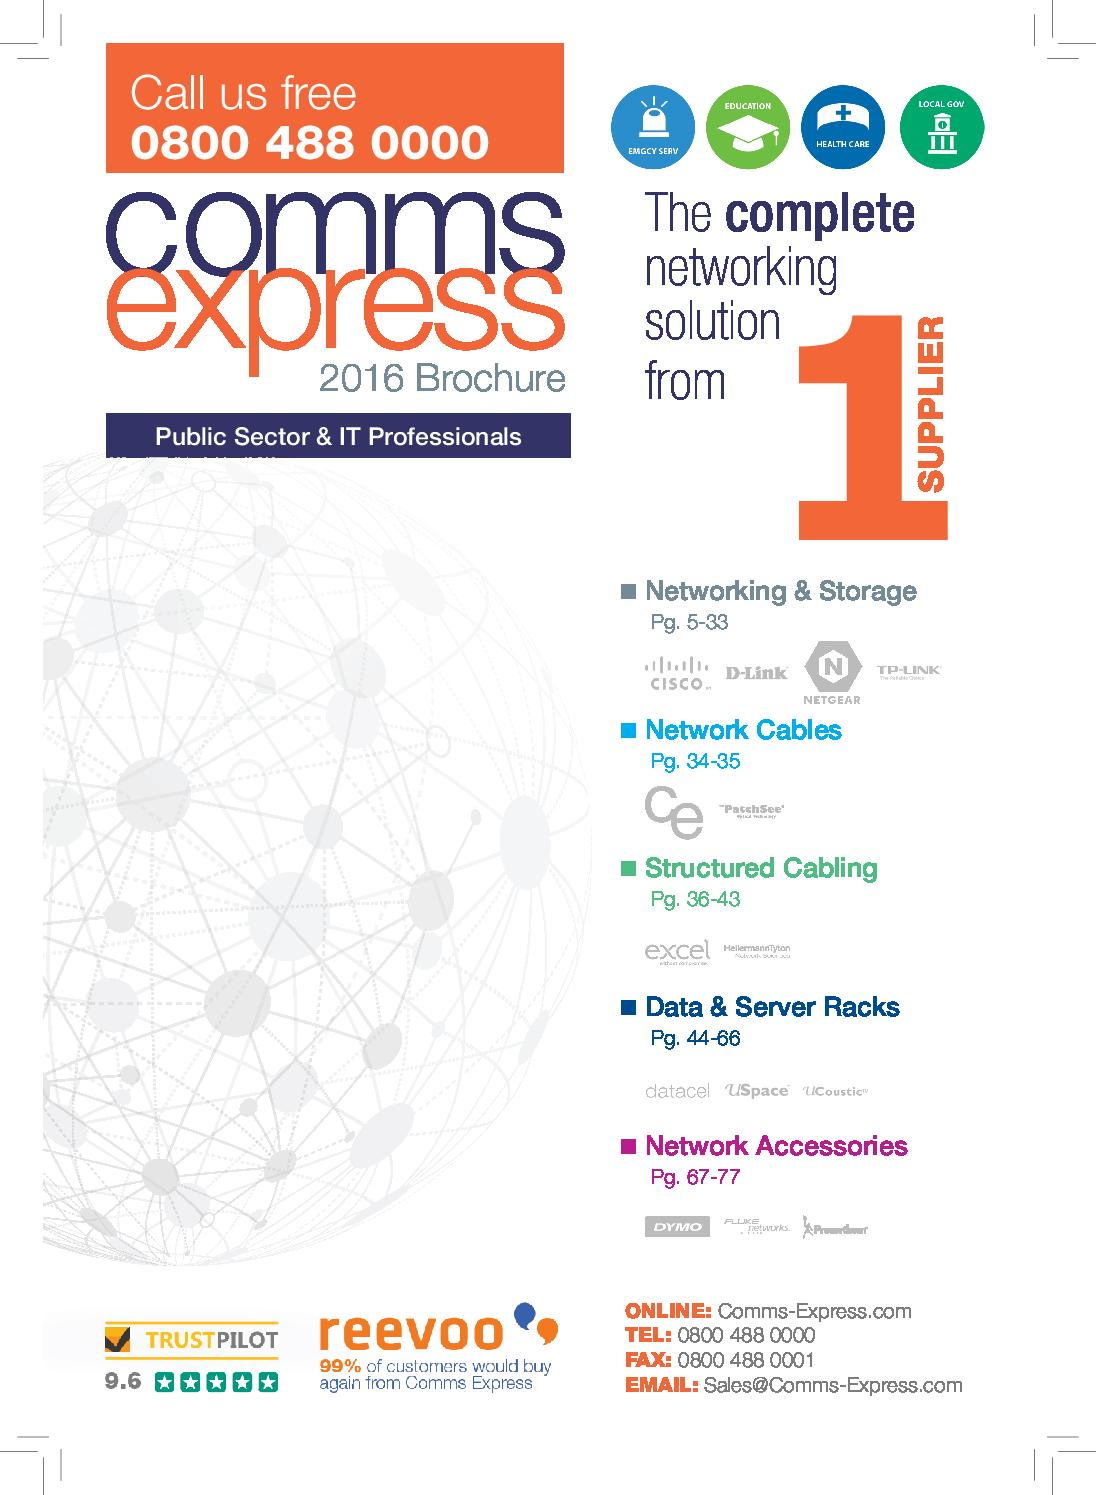 Comms Express 2016 Brochure By Commsexpress Issuu Avrs Watchdog Timer To Trigger A System Reset Elegant Circuits